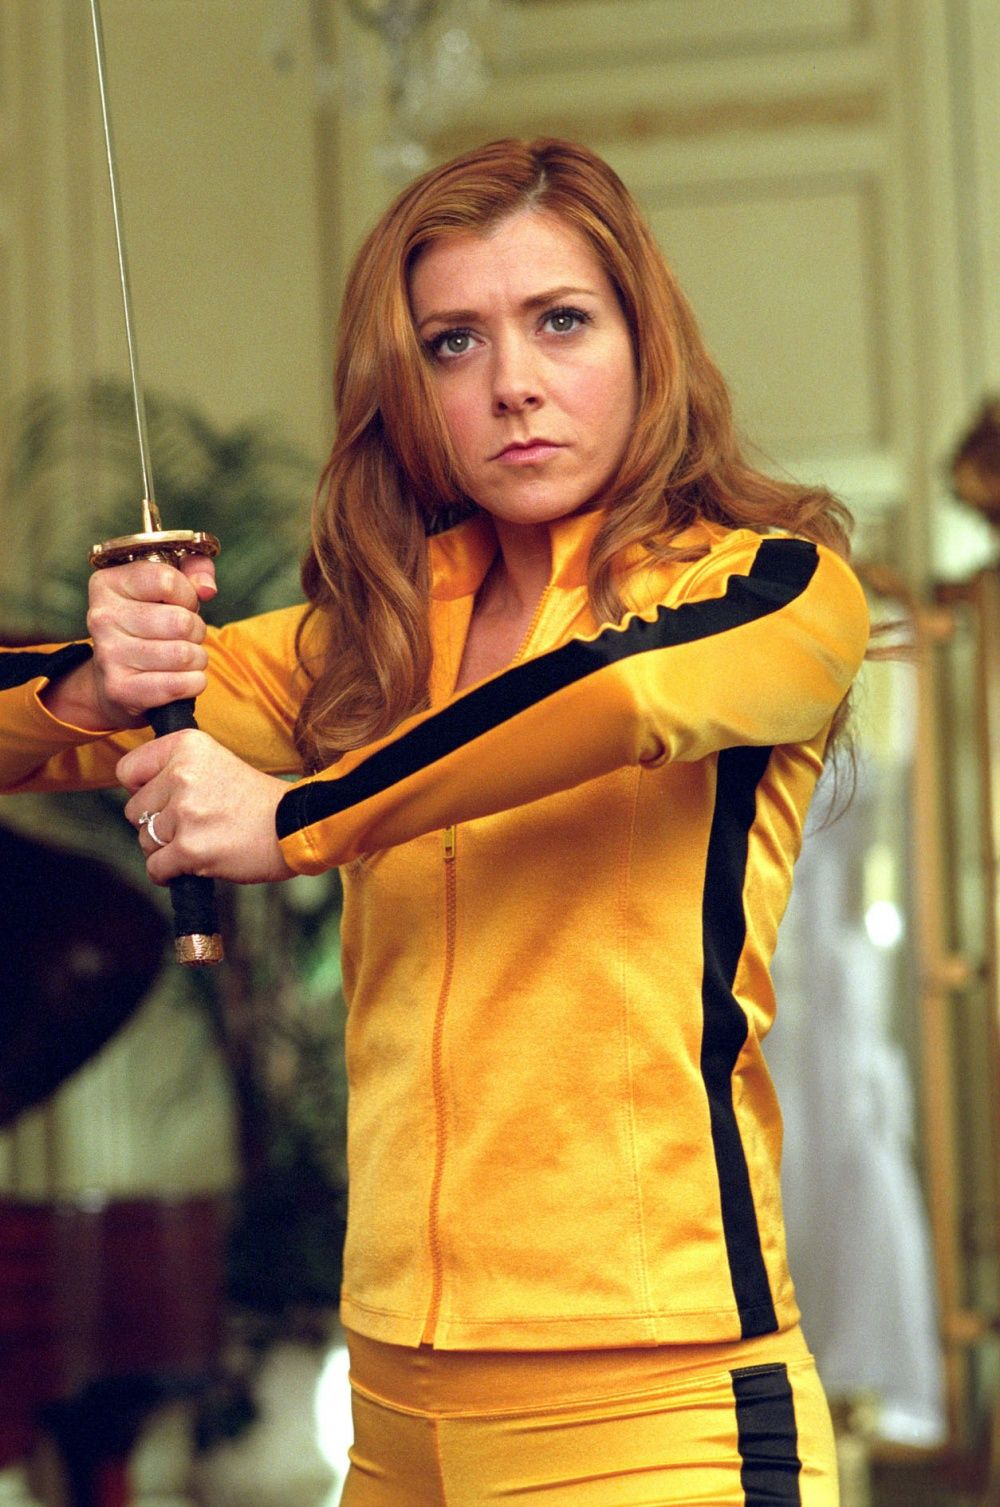 Alyson Hannigan Sex alyson hannigan en date movie | alyson hannigan, cosplay